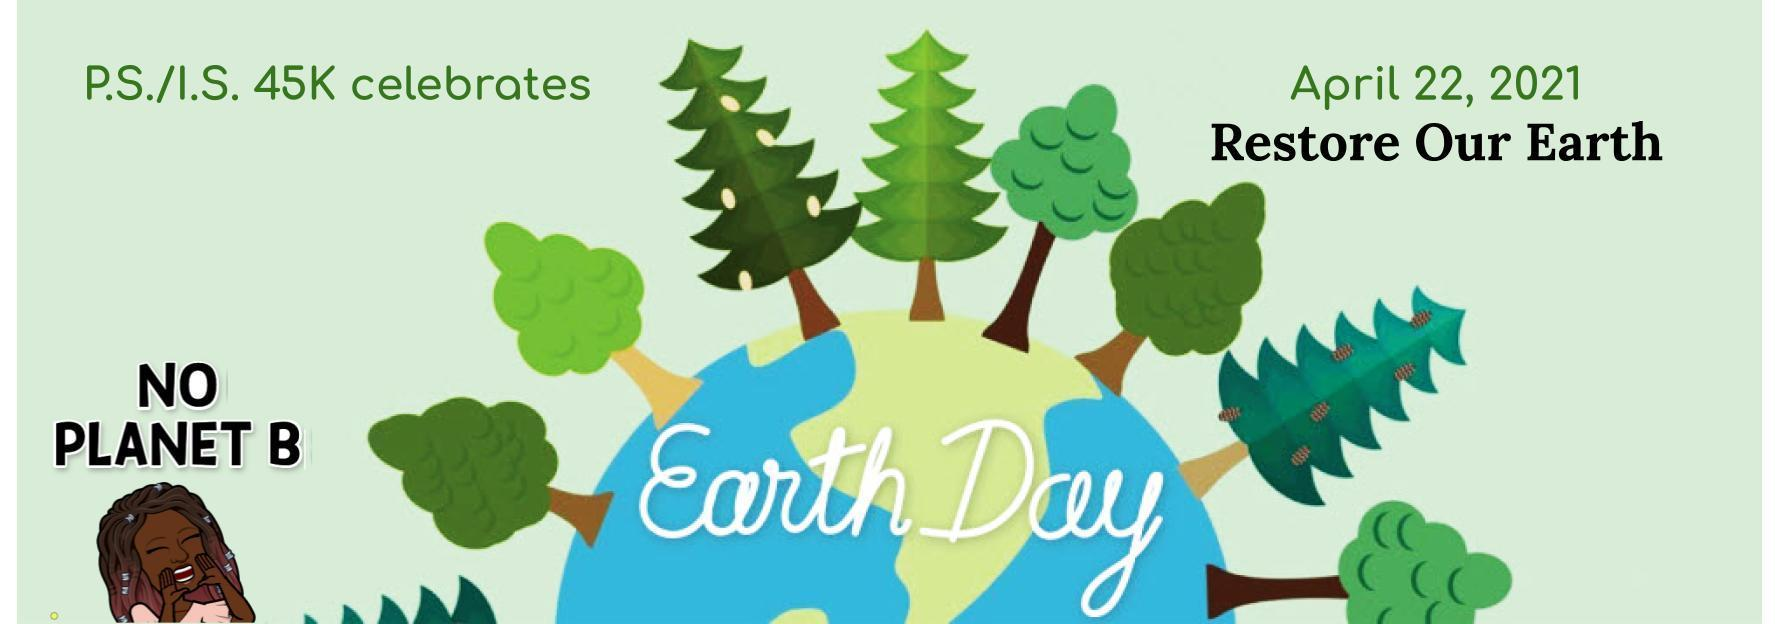 Our School celebrates Earth Day on April 22 2021. Theme: Restore our Earth